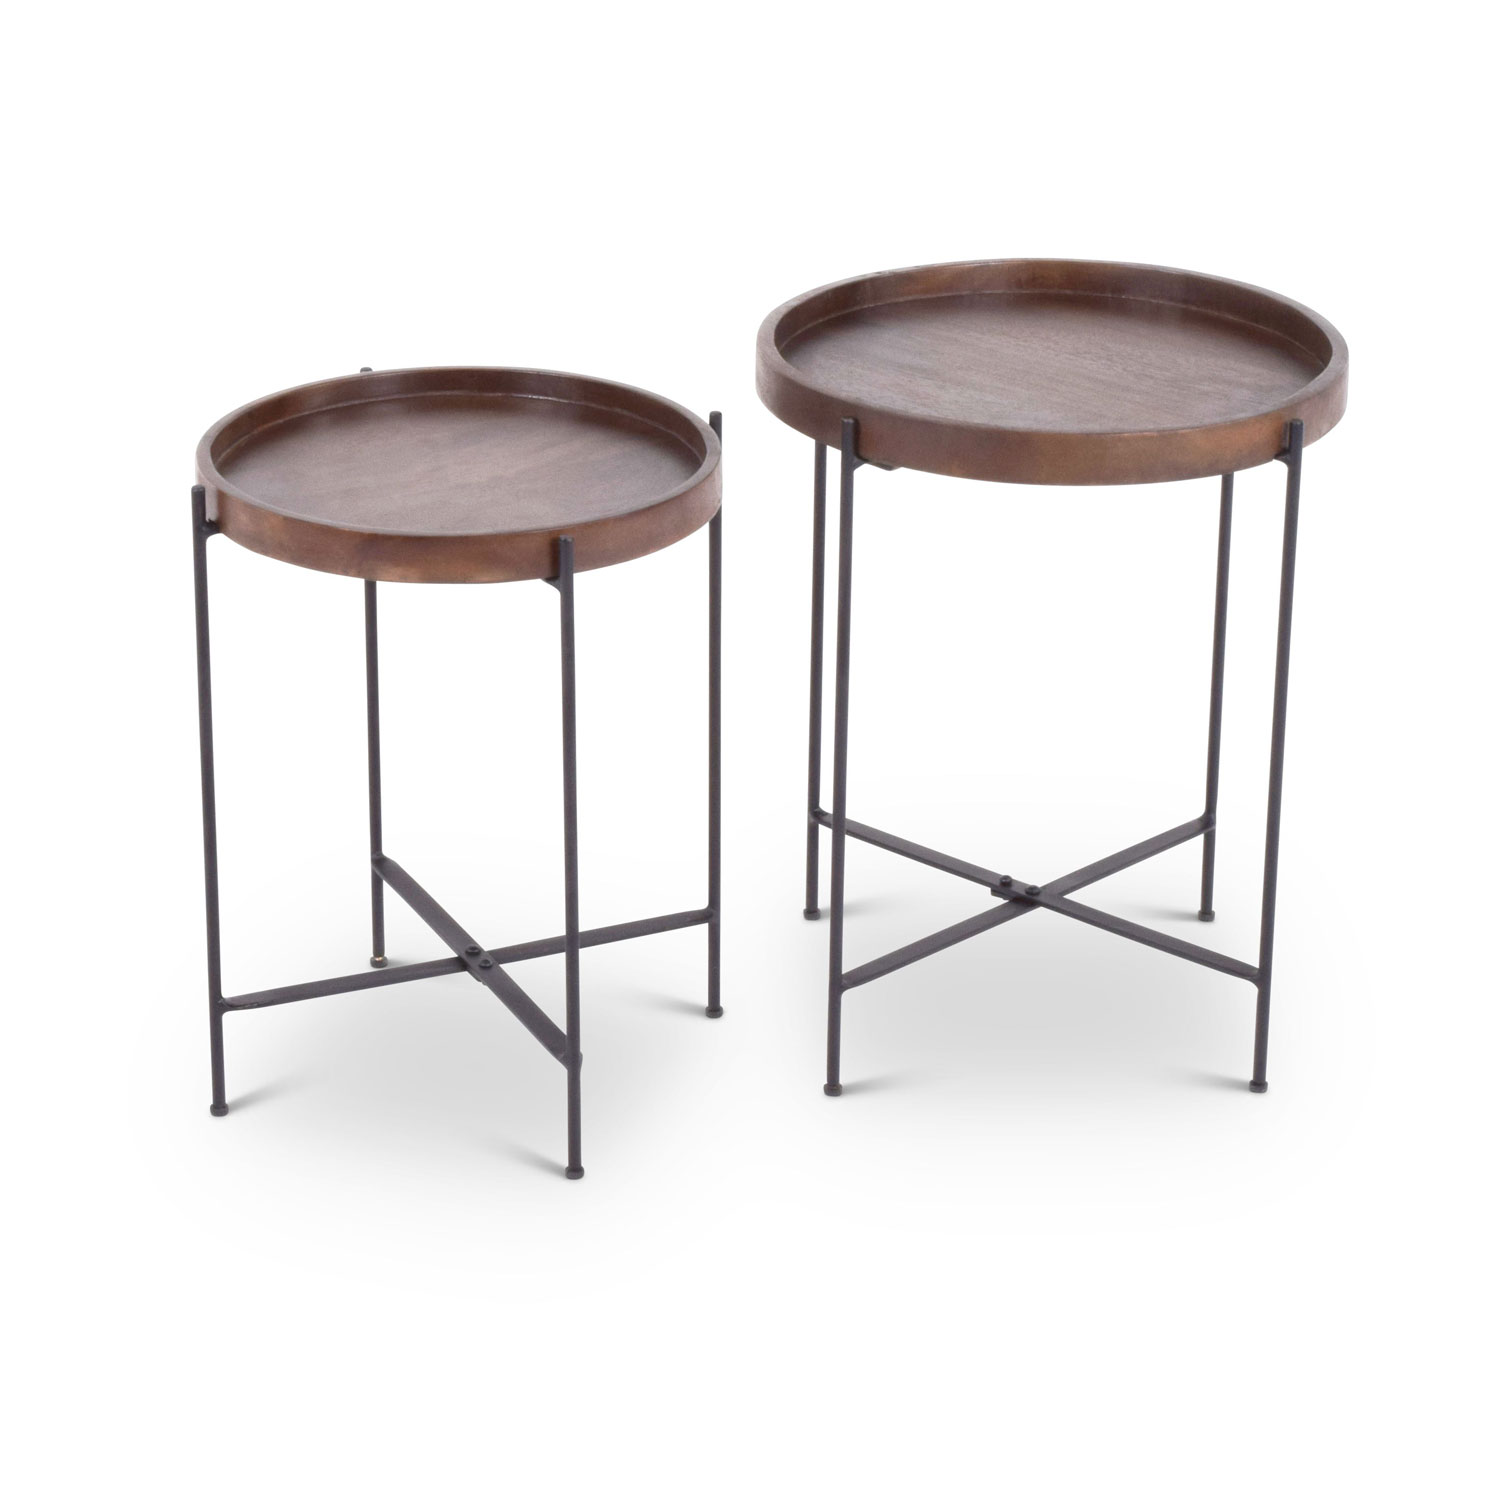 steve silver company capri round accent tables set table hover zoom bronze side small square white coffee outdoor dining black patio ships lantern lamp pier one kitchen sets for